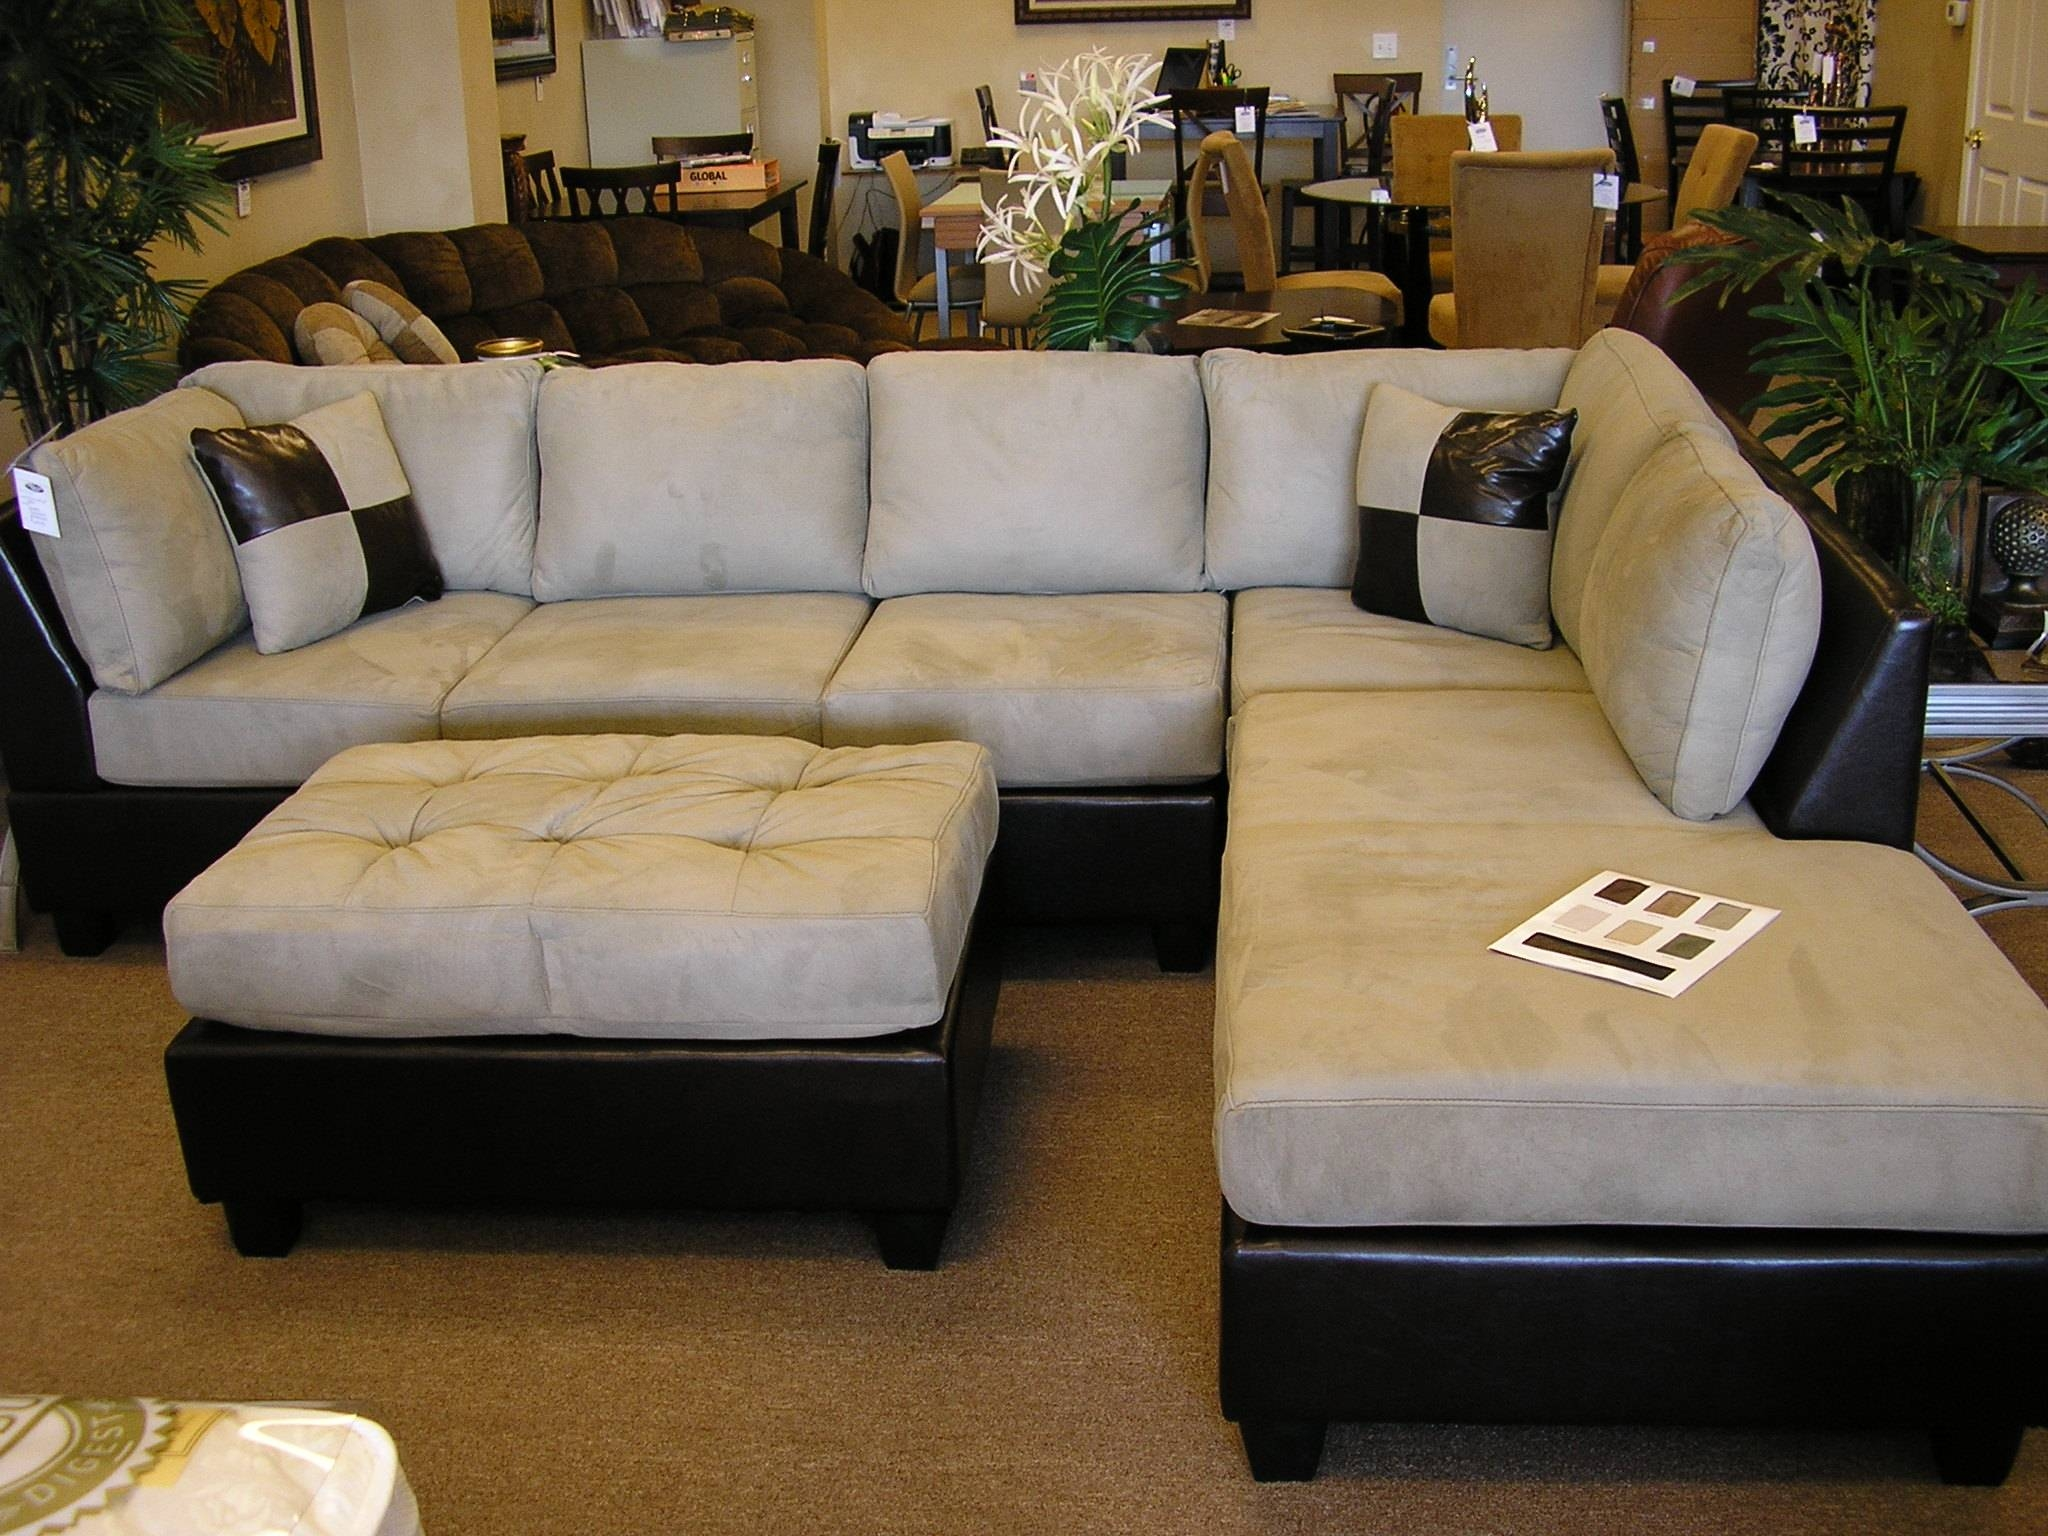 Sofas Center : Shocking Sectional Sofa With Ottoman Photo Ideas for Chenille And Leather Sectional Sofa (Image 27 of 30)